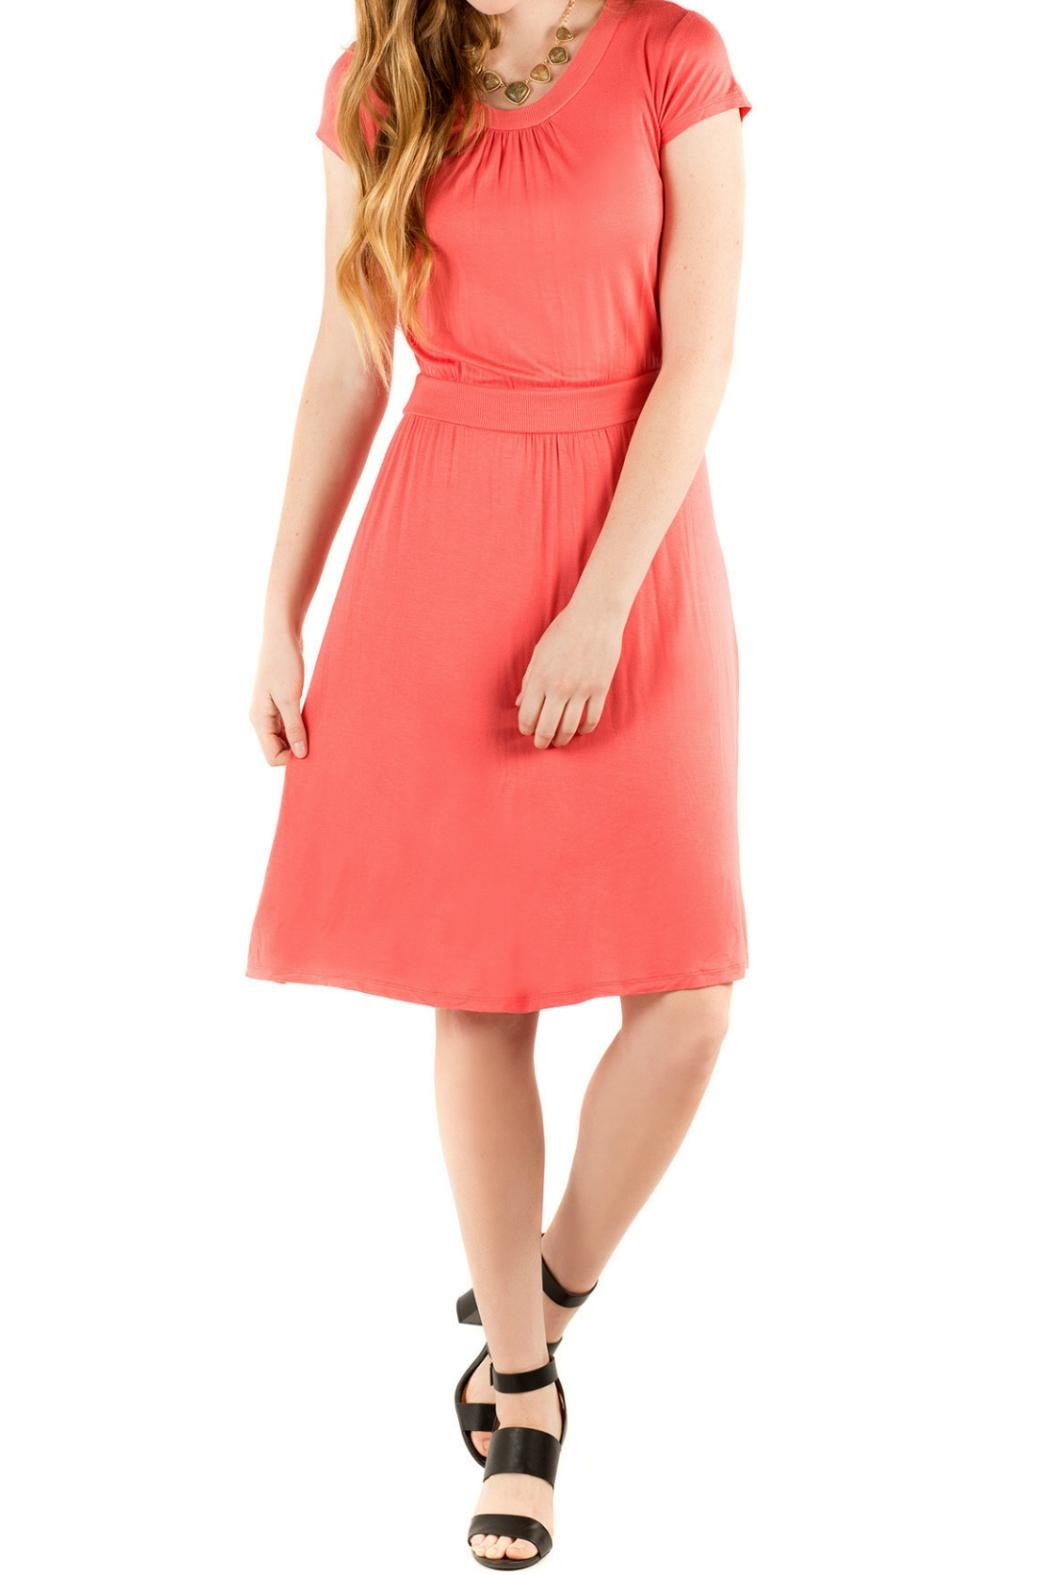 Downeast Basics Copacetic Dress Coral - Main Image